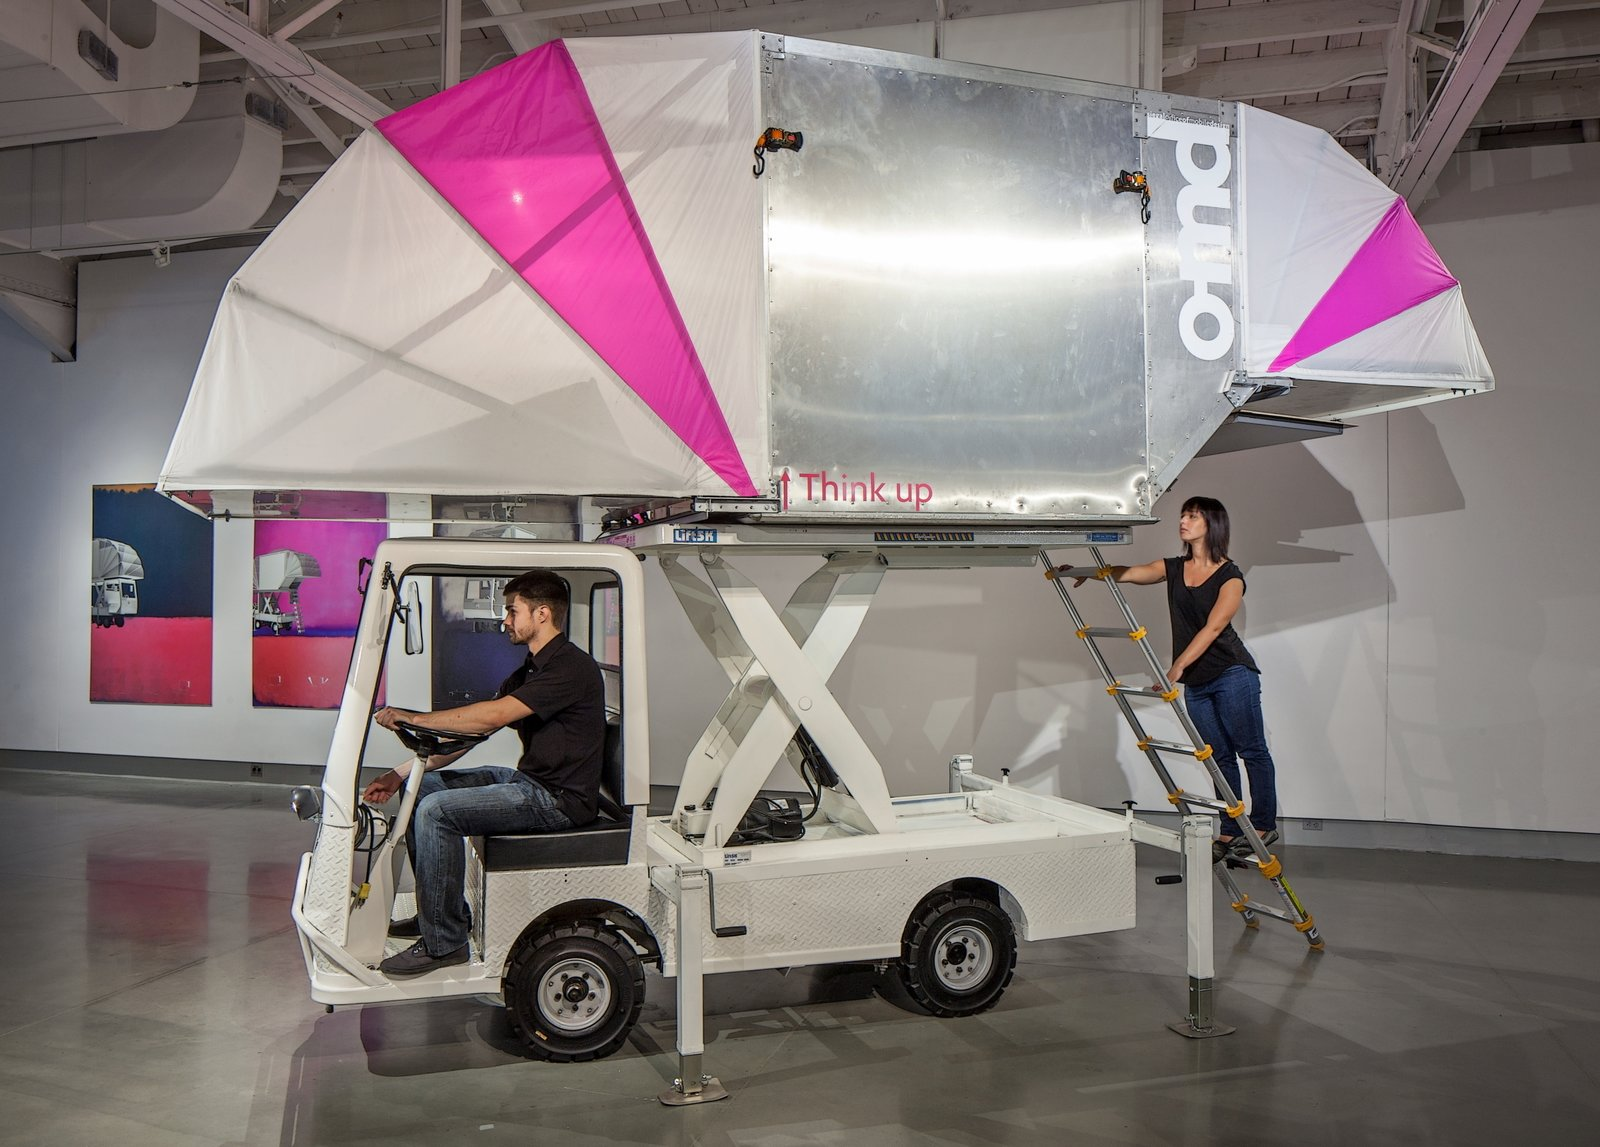 Jennifer Siegal of the Office of Mobile Design dreamed up a mobile dwelling that rests on top of a small truck. By pressing a button, the tent-like structure raises and inflates. A ladder mades the elevated space easily accessible. (Tour Siegal's Venice, California house, which features a truck trailer converted into a living space, here!)  Reimagined Mobile Dwellings by Allie Weiss